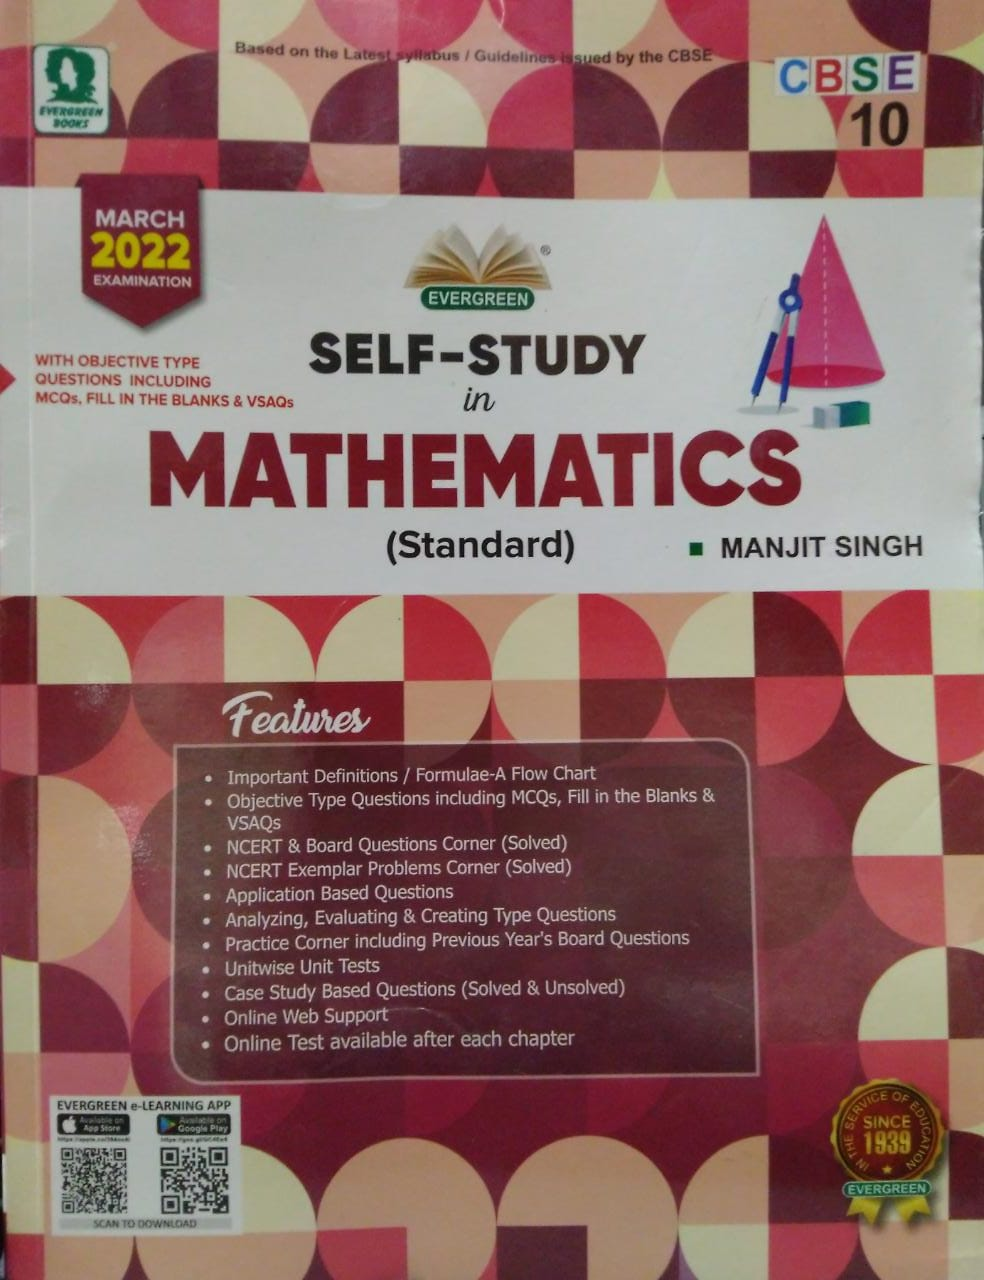 Evergreen CBSE Self Study In Mathematics(Standard)(CLASS X): For March 2022 Examination (Class 10) by Manjit Singh